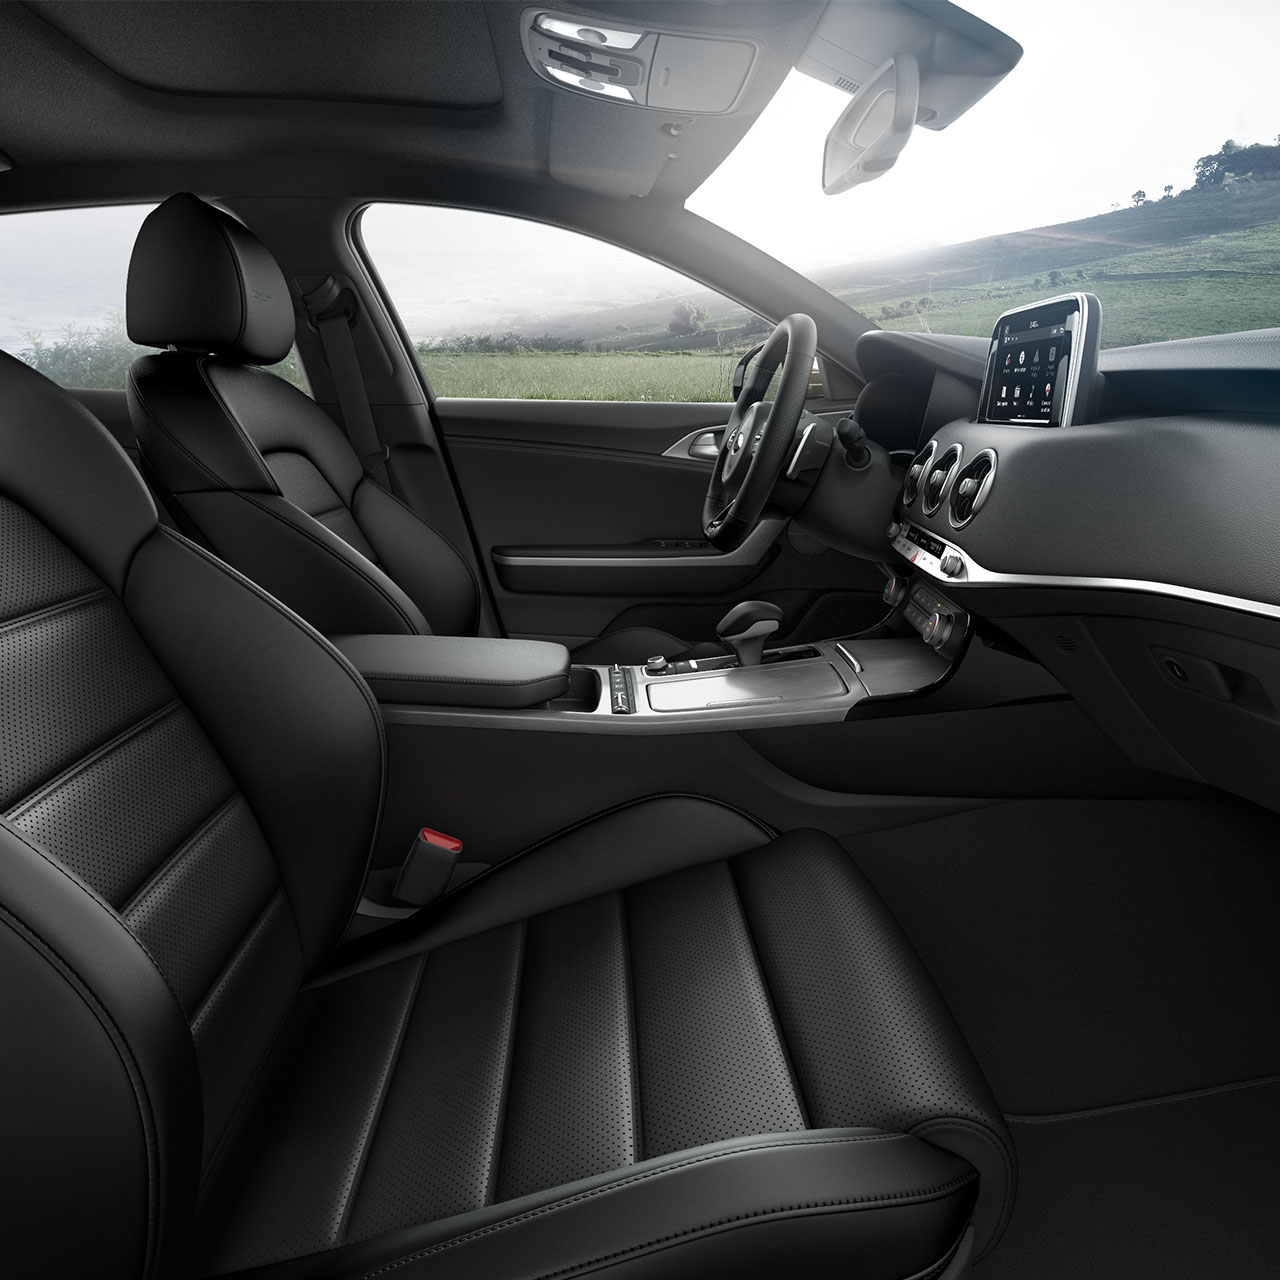 You'll Fall in Love with the Stinger's Interior